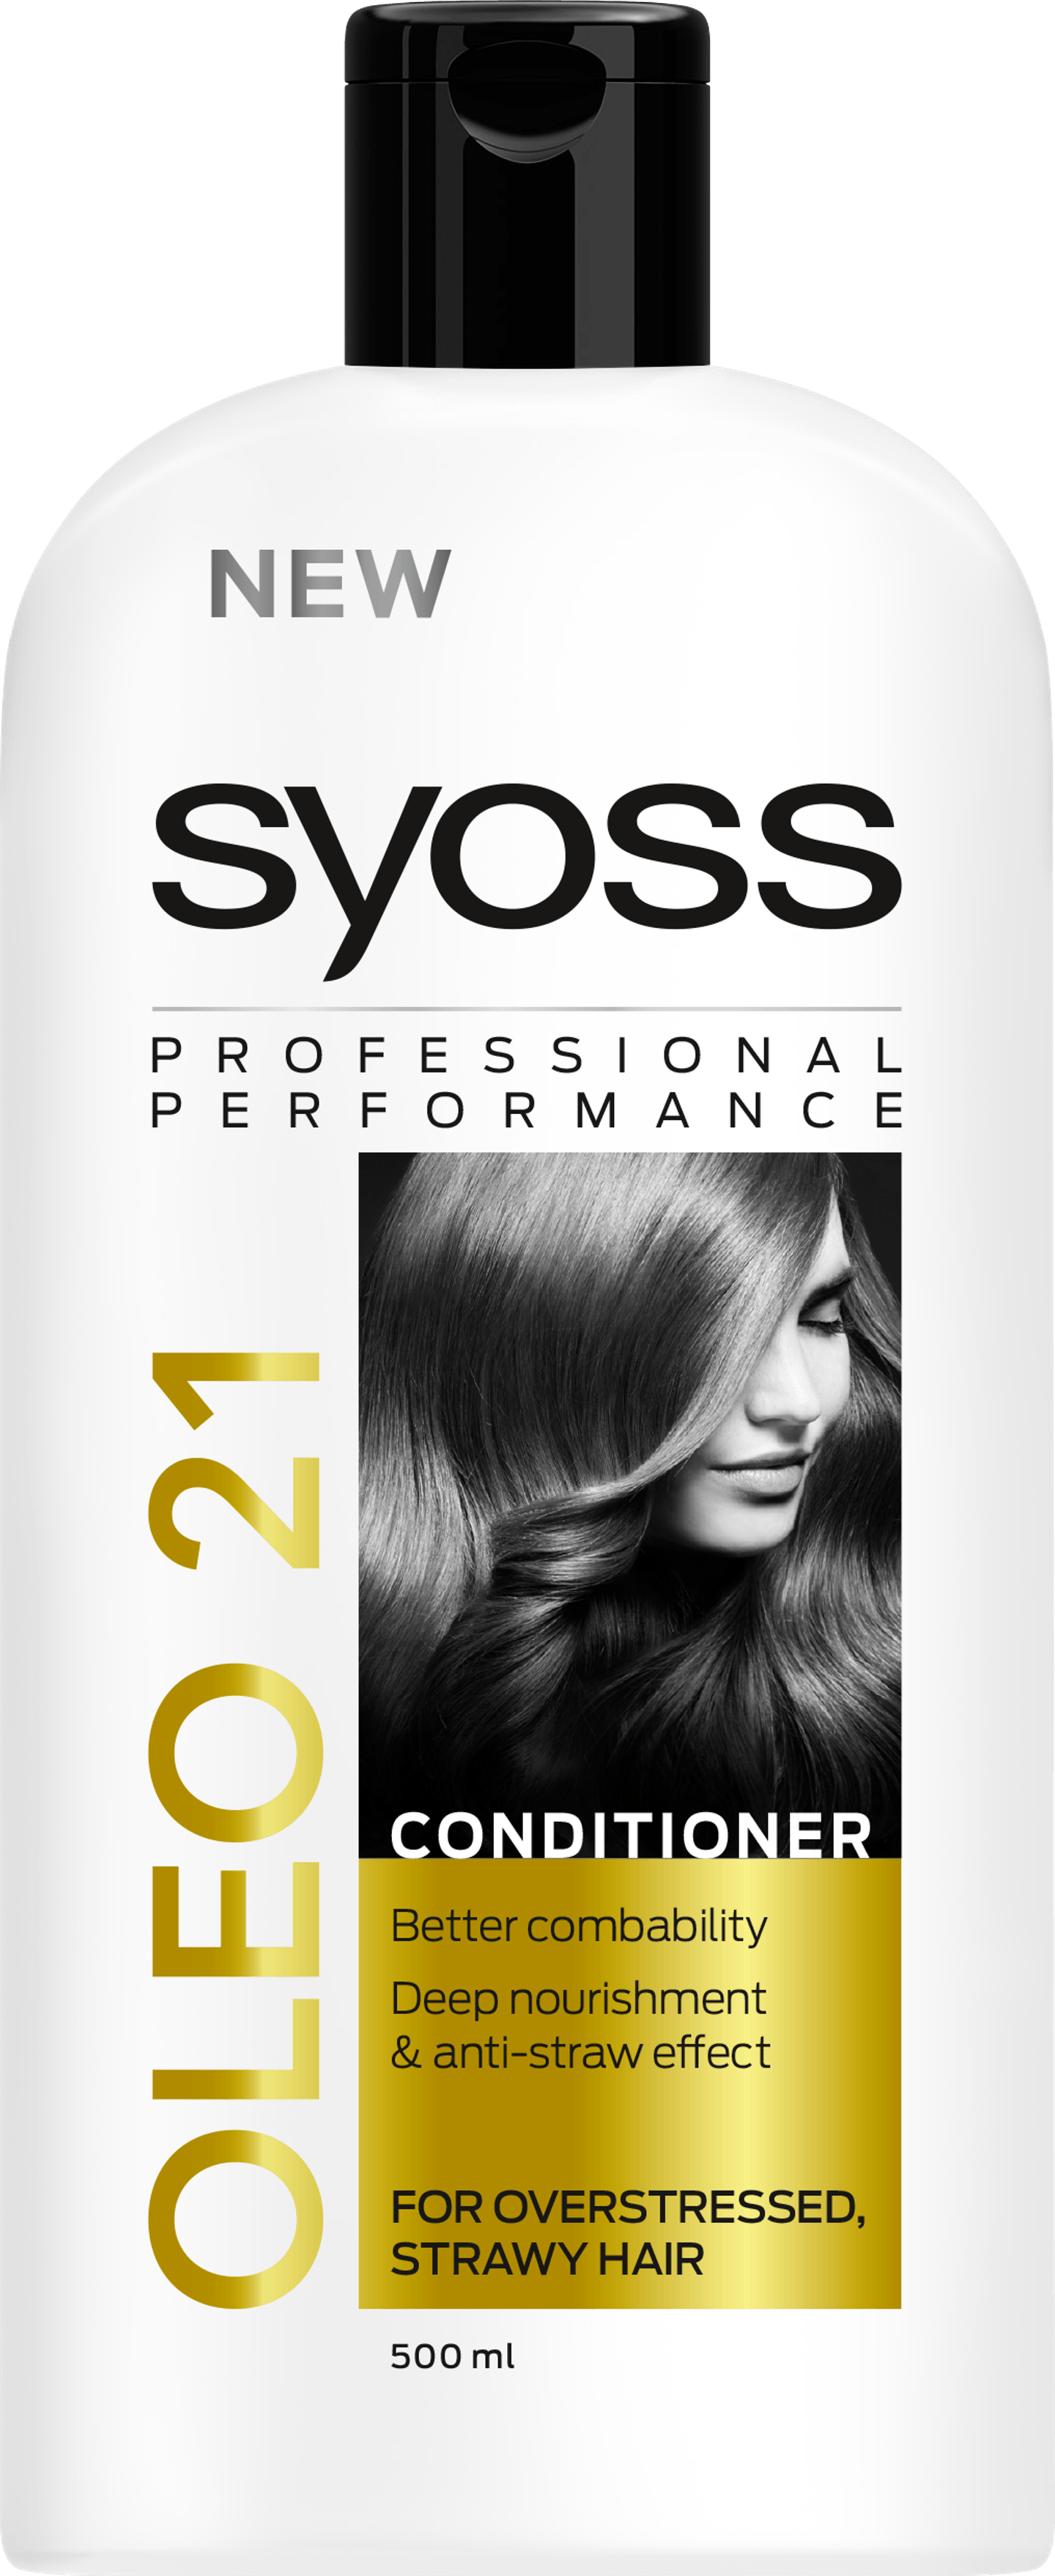 Syoss Oleo 21 Conditioner